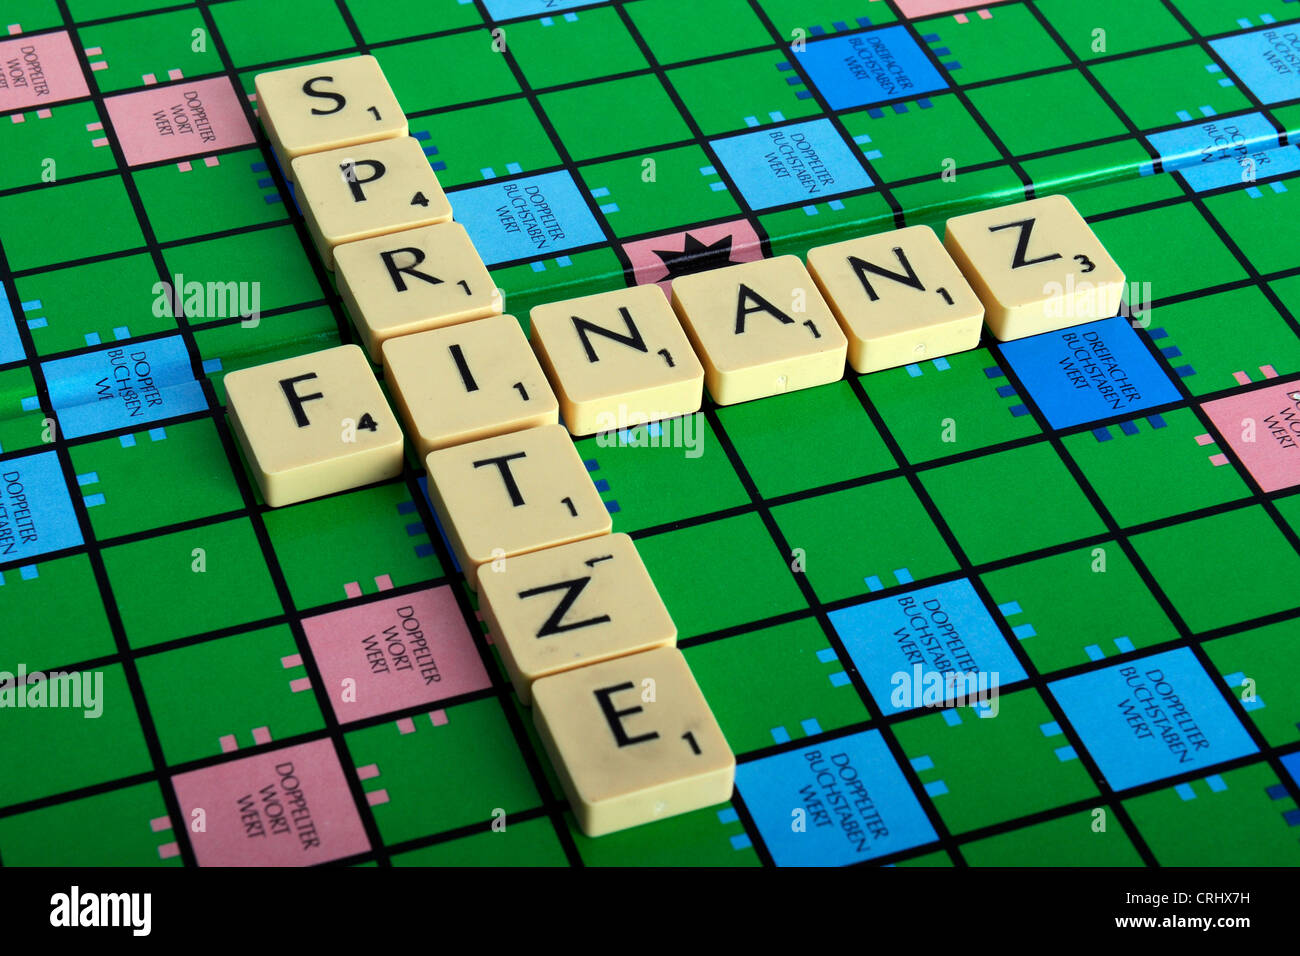 Scrabble field with the words 'Finanz' and 'Spritze', the 'Z' in the latter incorrectly - Stock Image